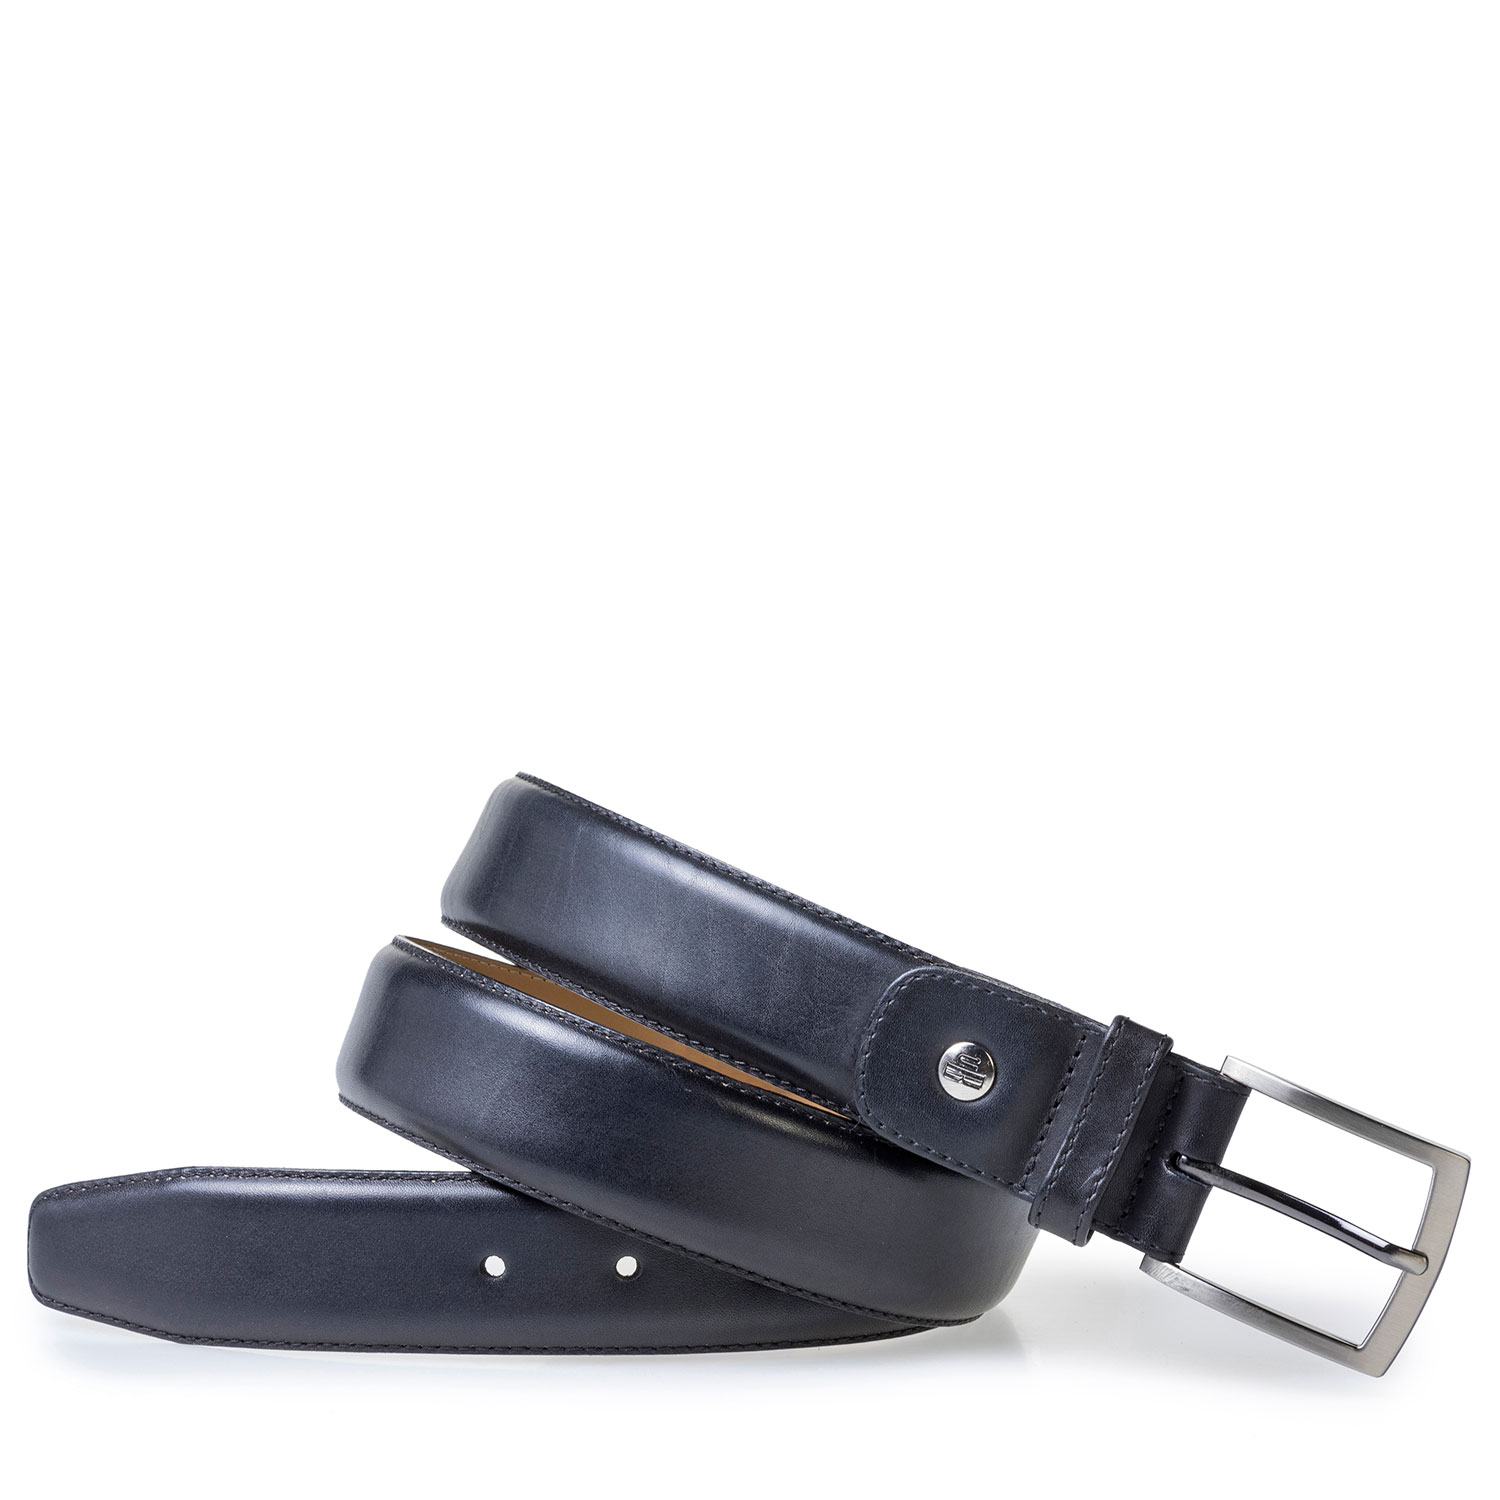 75533/16 - Dark blue calf leather belt